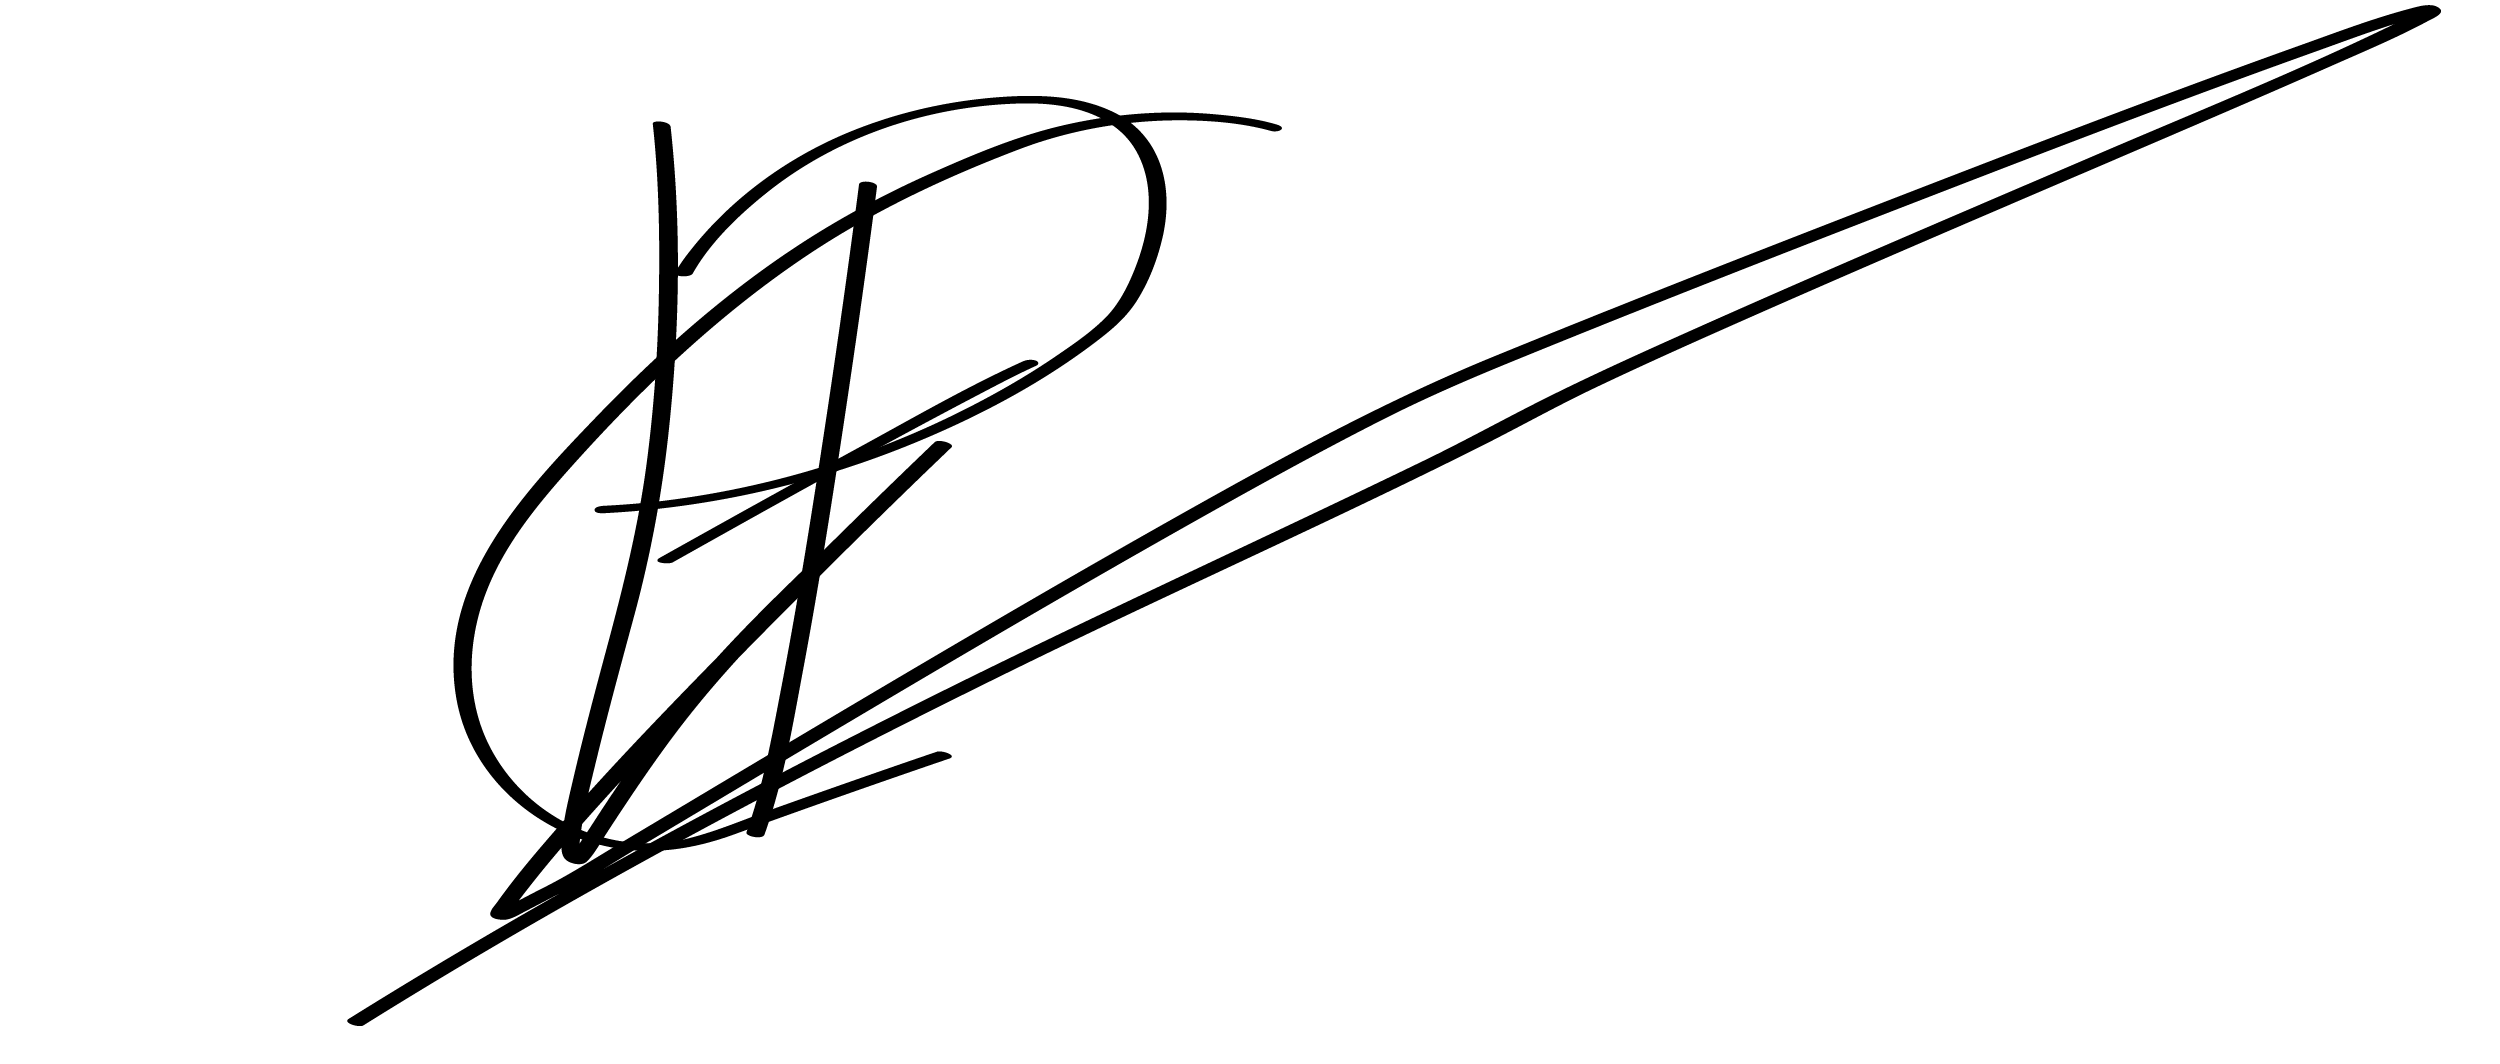 Caitlin white's Signature